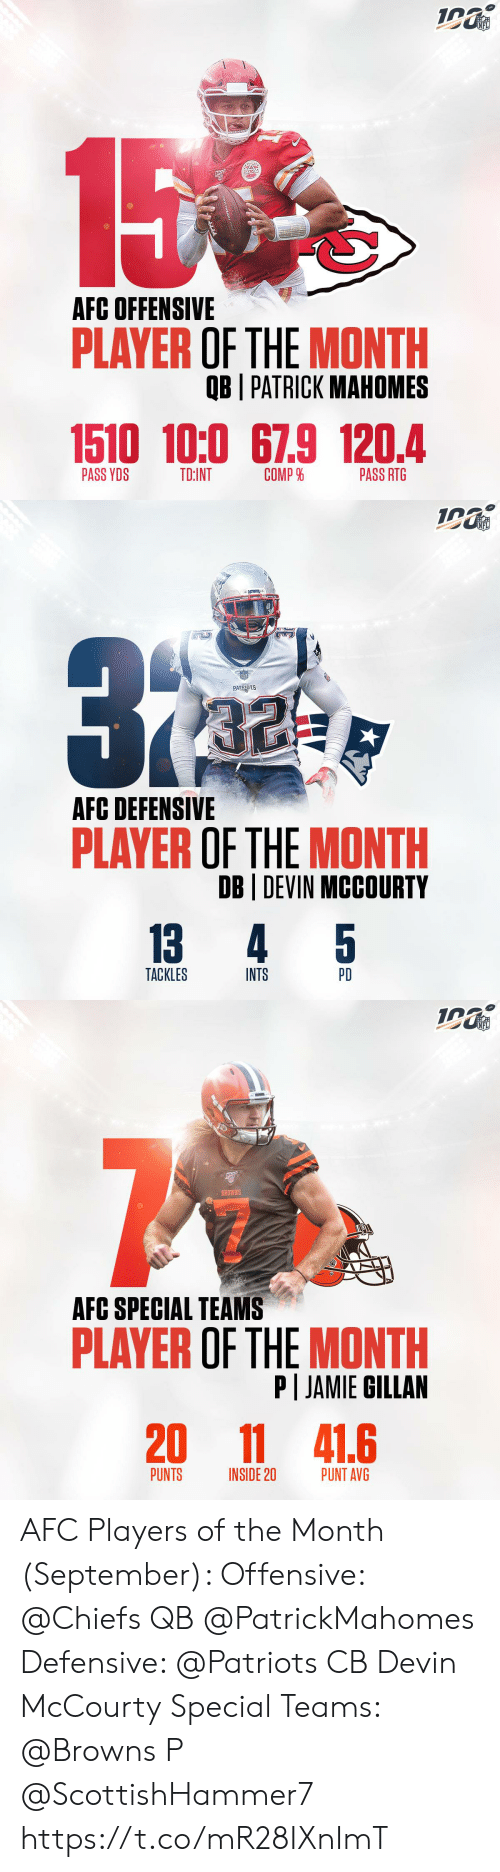 Devin: NFL  15  AFC OFFENSIVE  PLAYER OF THE MONTH  OB I PATRICK MAHOMES  1510 10:0 67.9 120.4  COMP %  PASS YDS  TD:INT  PASS RTG   NFL  ATROTE  PATRIOTS  AFC DEFENSIVE  PLAYER OF THE MONTH  DB DEVIN MCCOURTY  5  13  4  TACKLES  INTS  PD   NFL  BROWNS  AFC SPECIAL TEAMS  PLAYER OF THE MONTH  P JAMIE GILLAN  20  11 41.6  PUNTS  PUNT AVG  INSIDE 20 AFC Players of the Month (September):   Offensive: @Chiefs QB @PatrickMahomes  Defensive: @Patriots CB Devin McCourty Special Teams: @Browns P @ScottishHammer7 https://t.co/mR28IXnImT